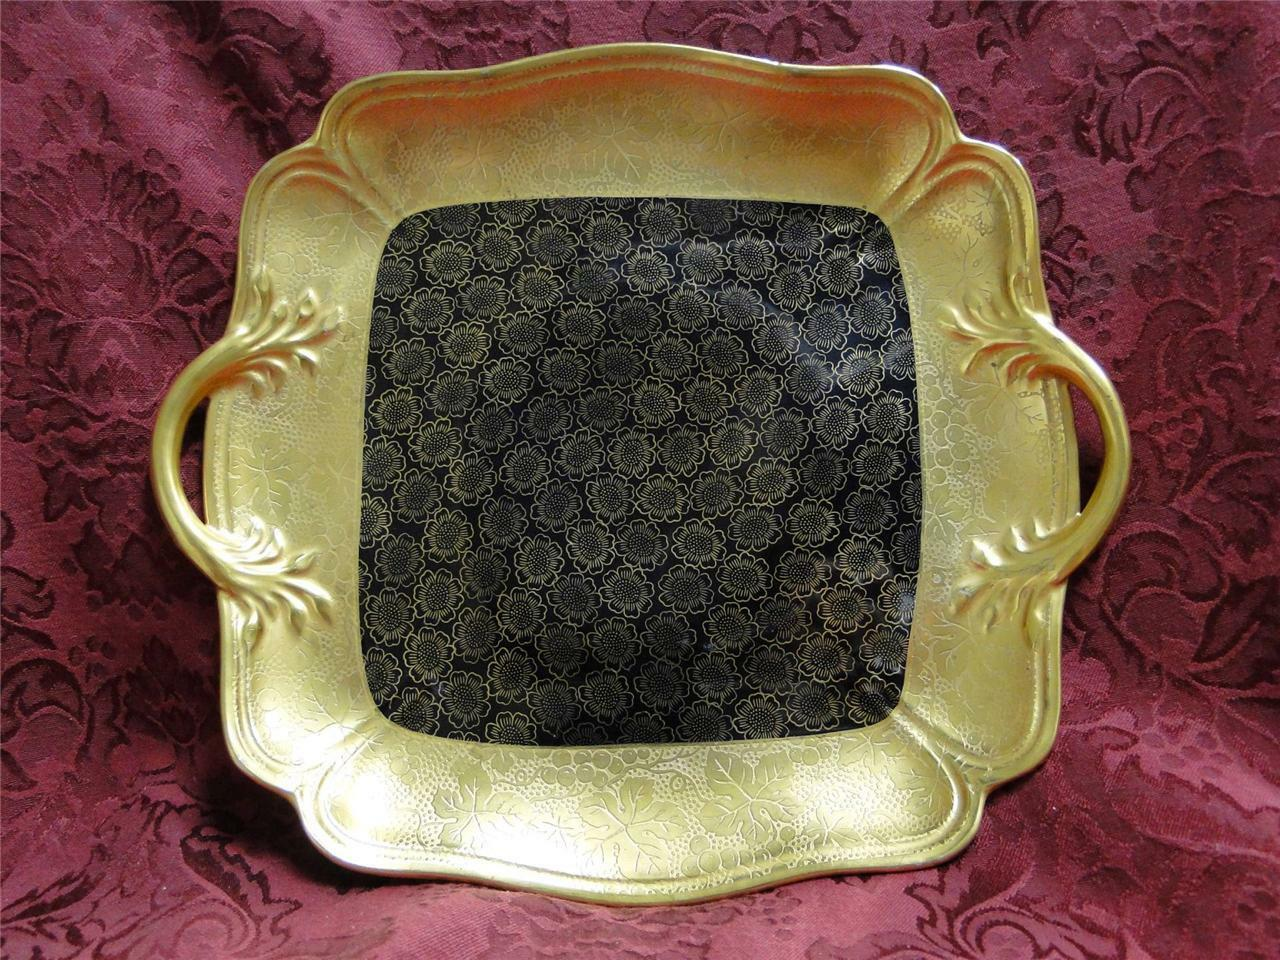 Noritake Encrusted Gold, Gold Flowers on Black, Luster: Square Cake Plate, 11""